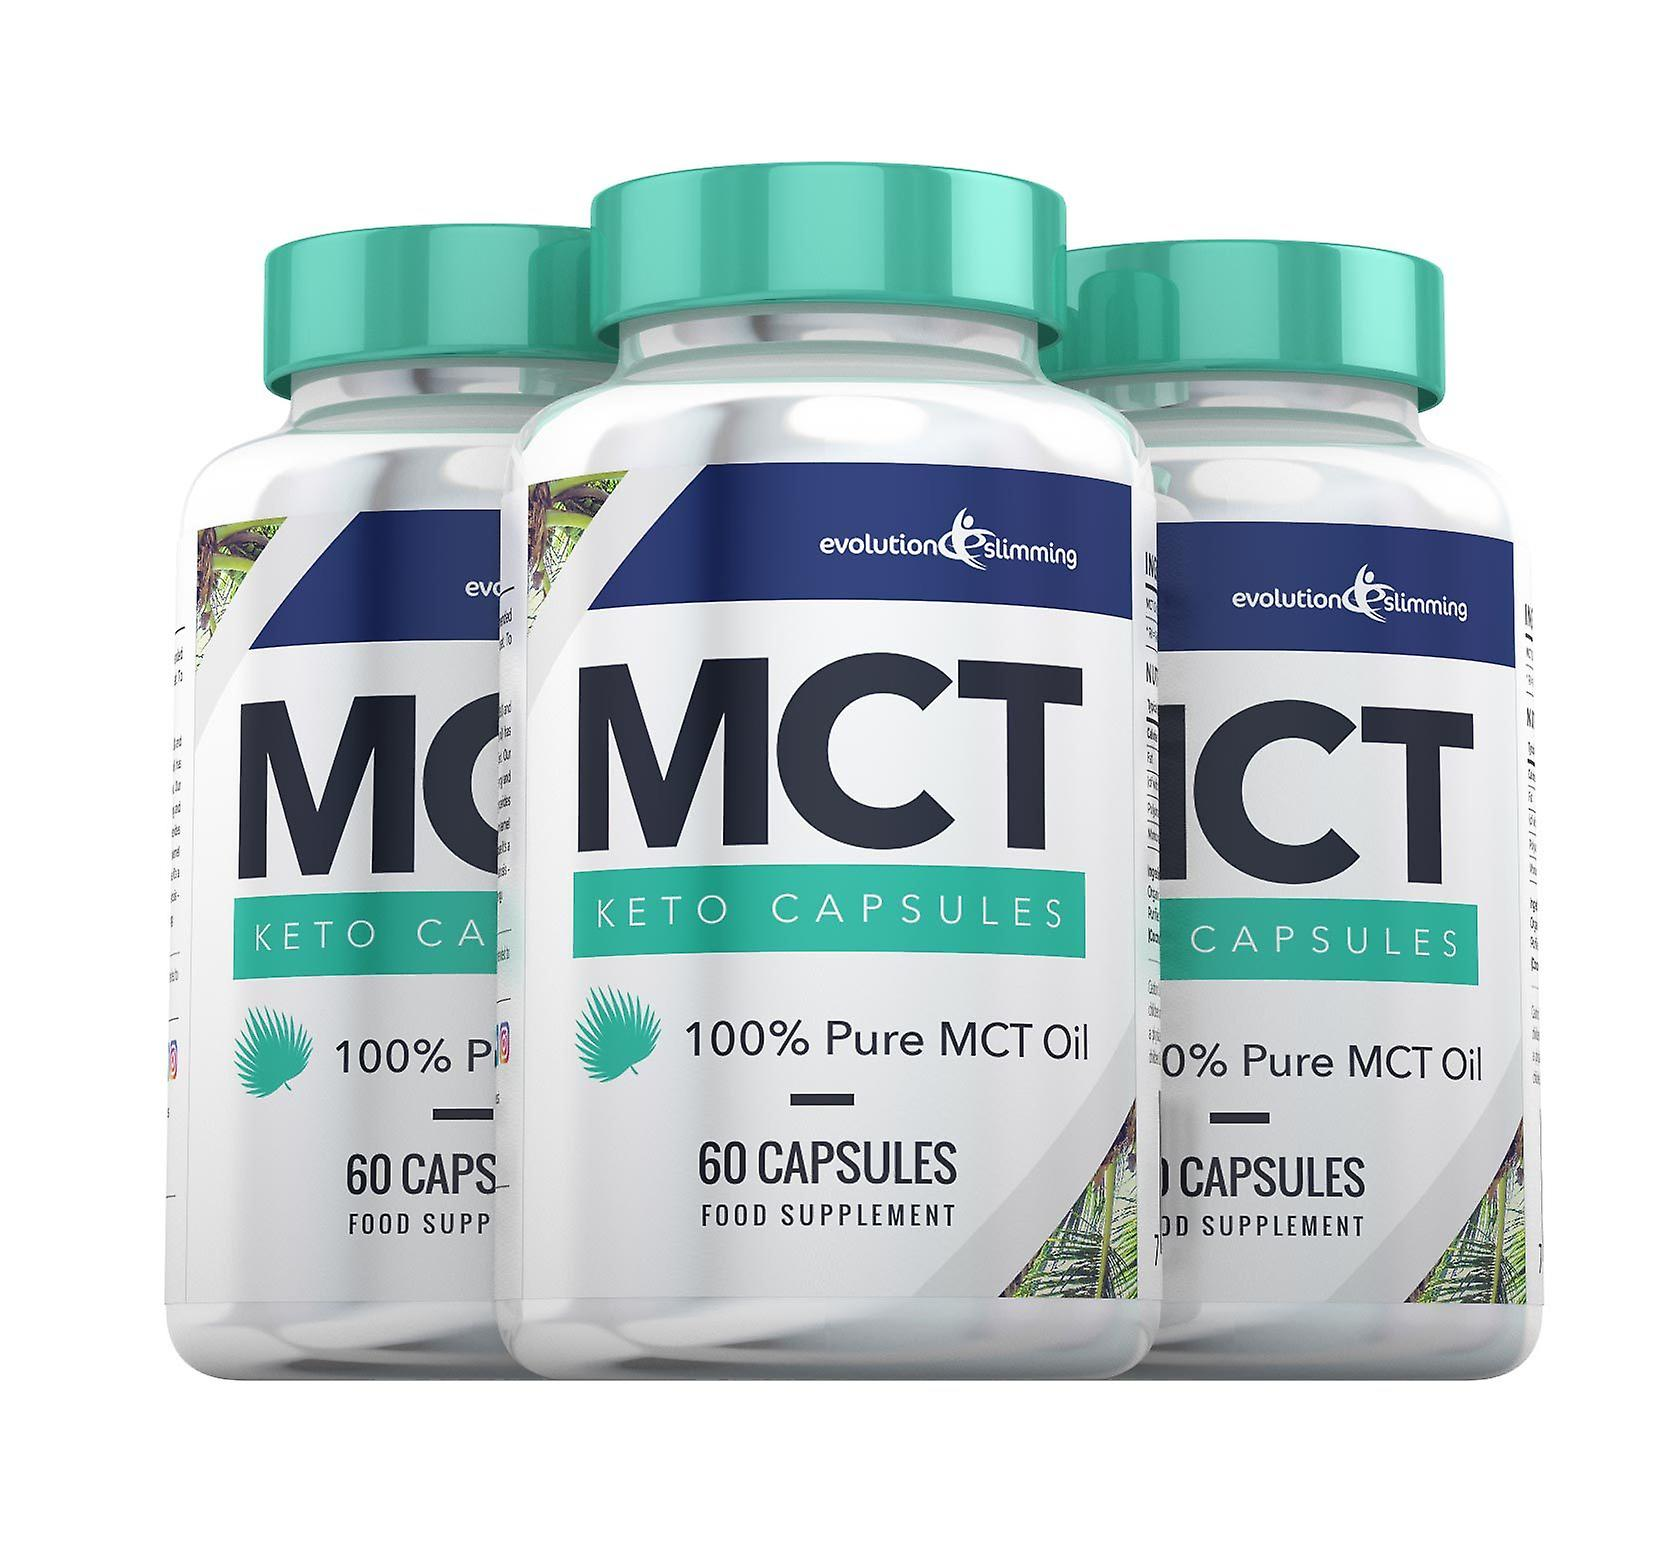 MCT huile céto Capsules 100 % Pure MCT huile - 180 Capsules - Capsules d'huile MCT - Evolution minceur